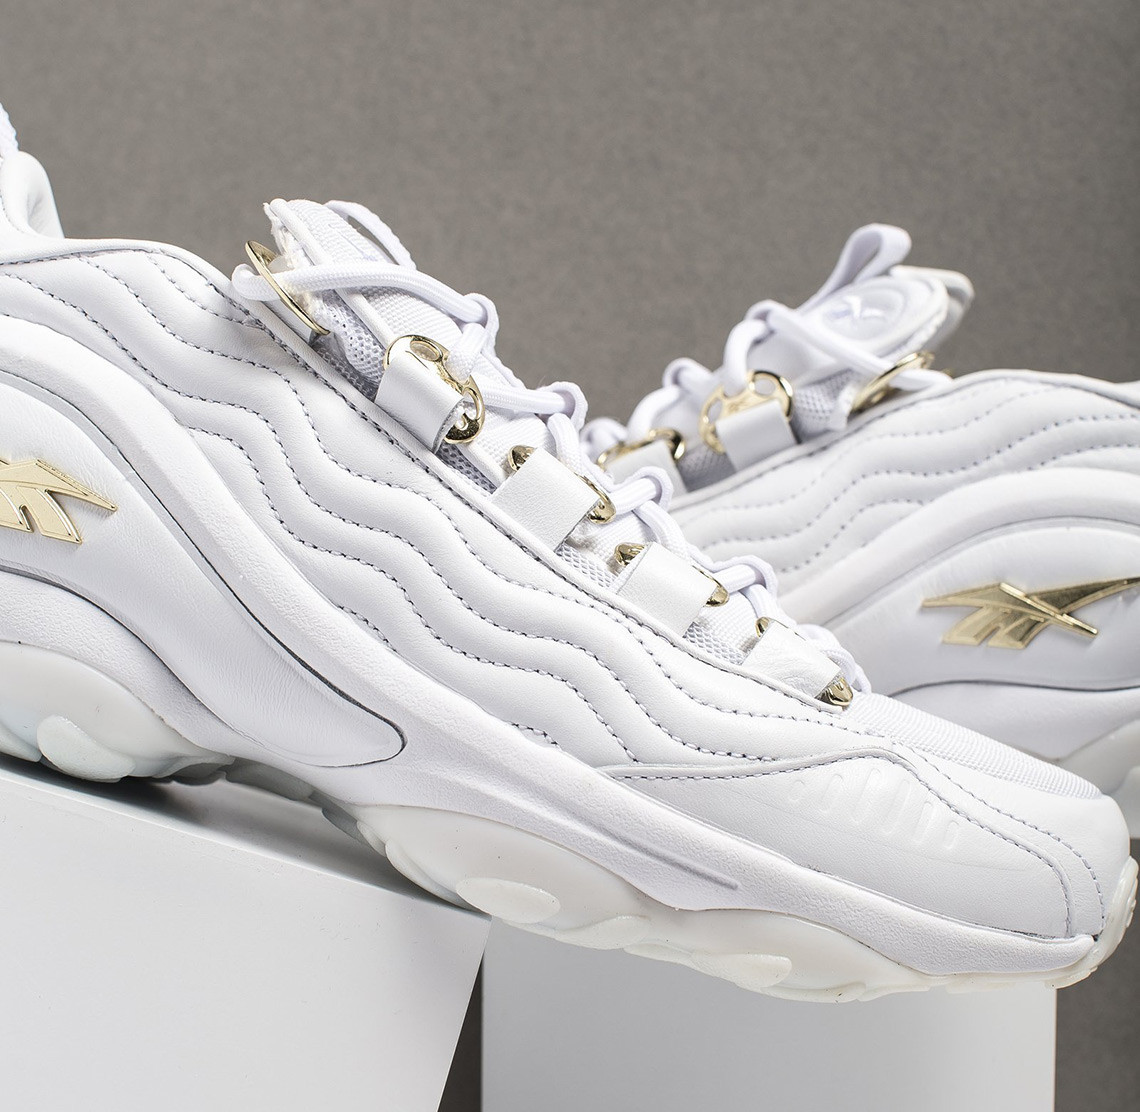 Reebok Upguns Its DMX Run 10 With Gold Metal Hardware